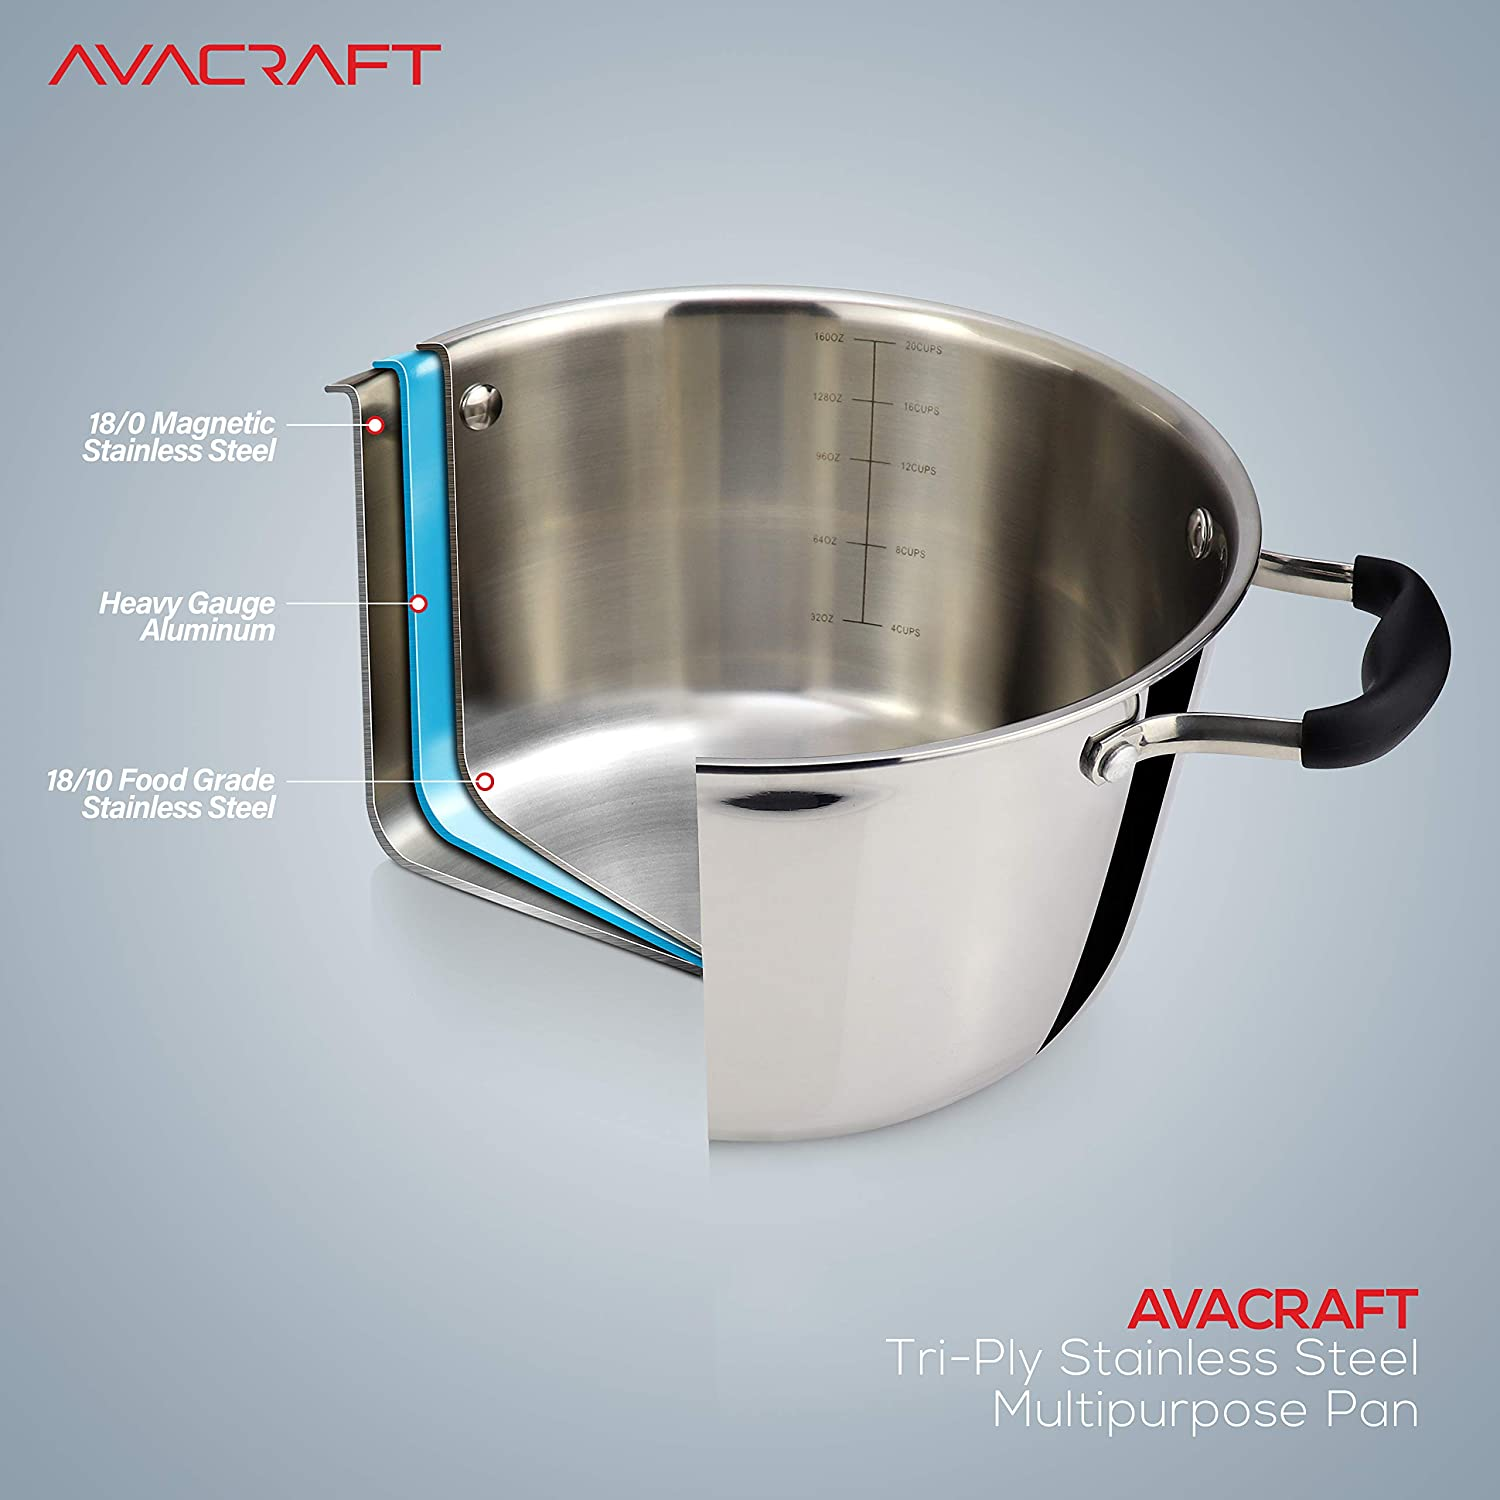 AVACRAFT 18//10 Tri-ply Stainless Steel Multipurpose Pot 5 Quart Ergonomic Heat Proof Handles Dutch Oven Casserole Stock pot with Lid Best Chef/'s Pan with Glass Lid in Pots and Pans